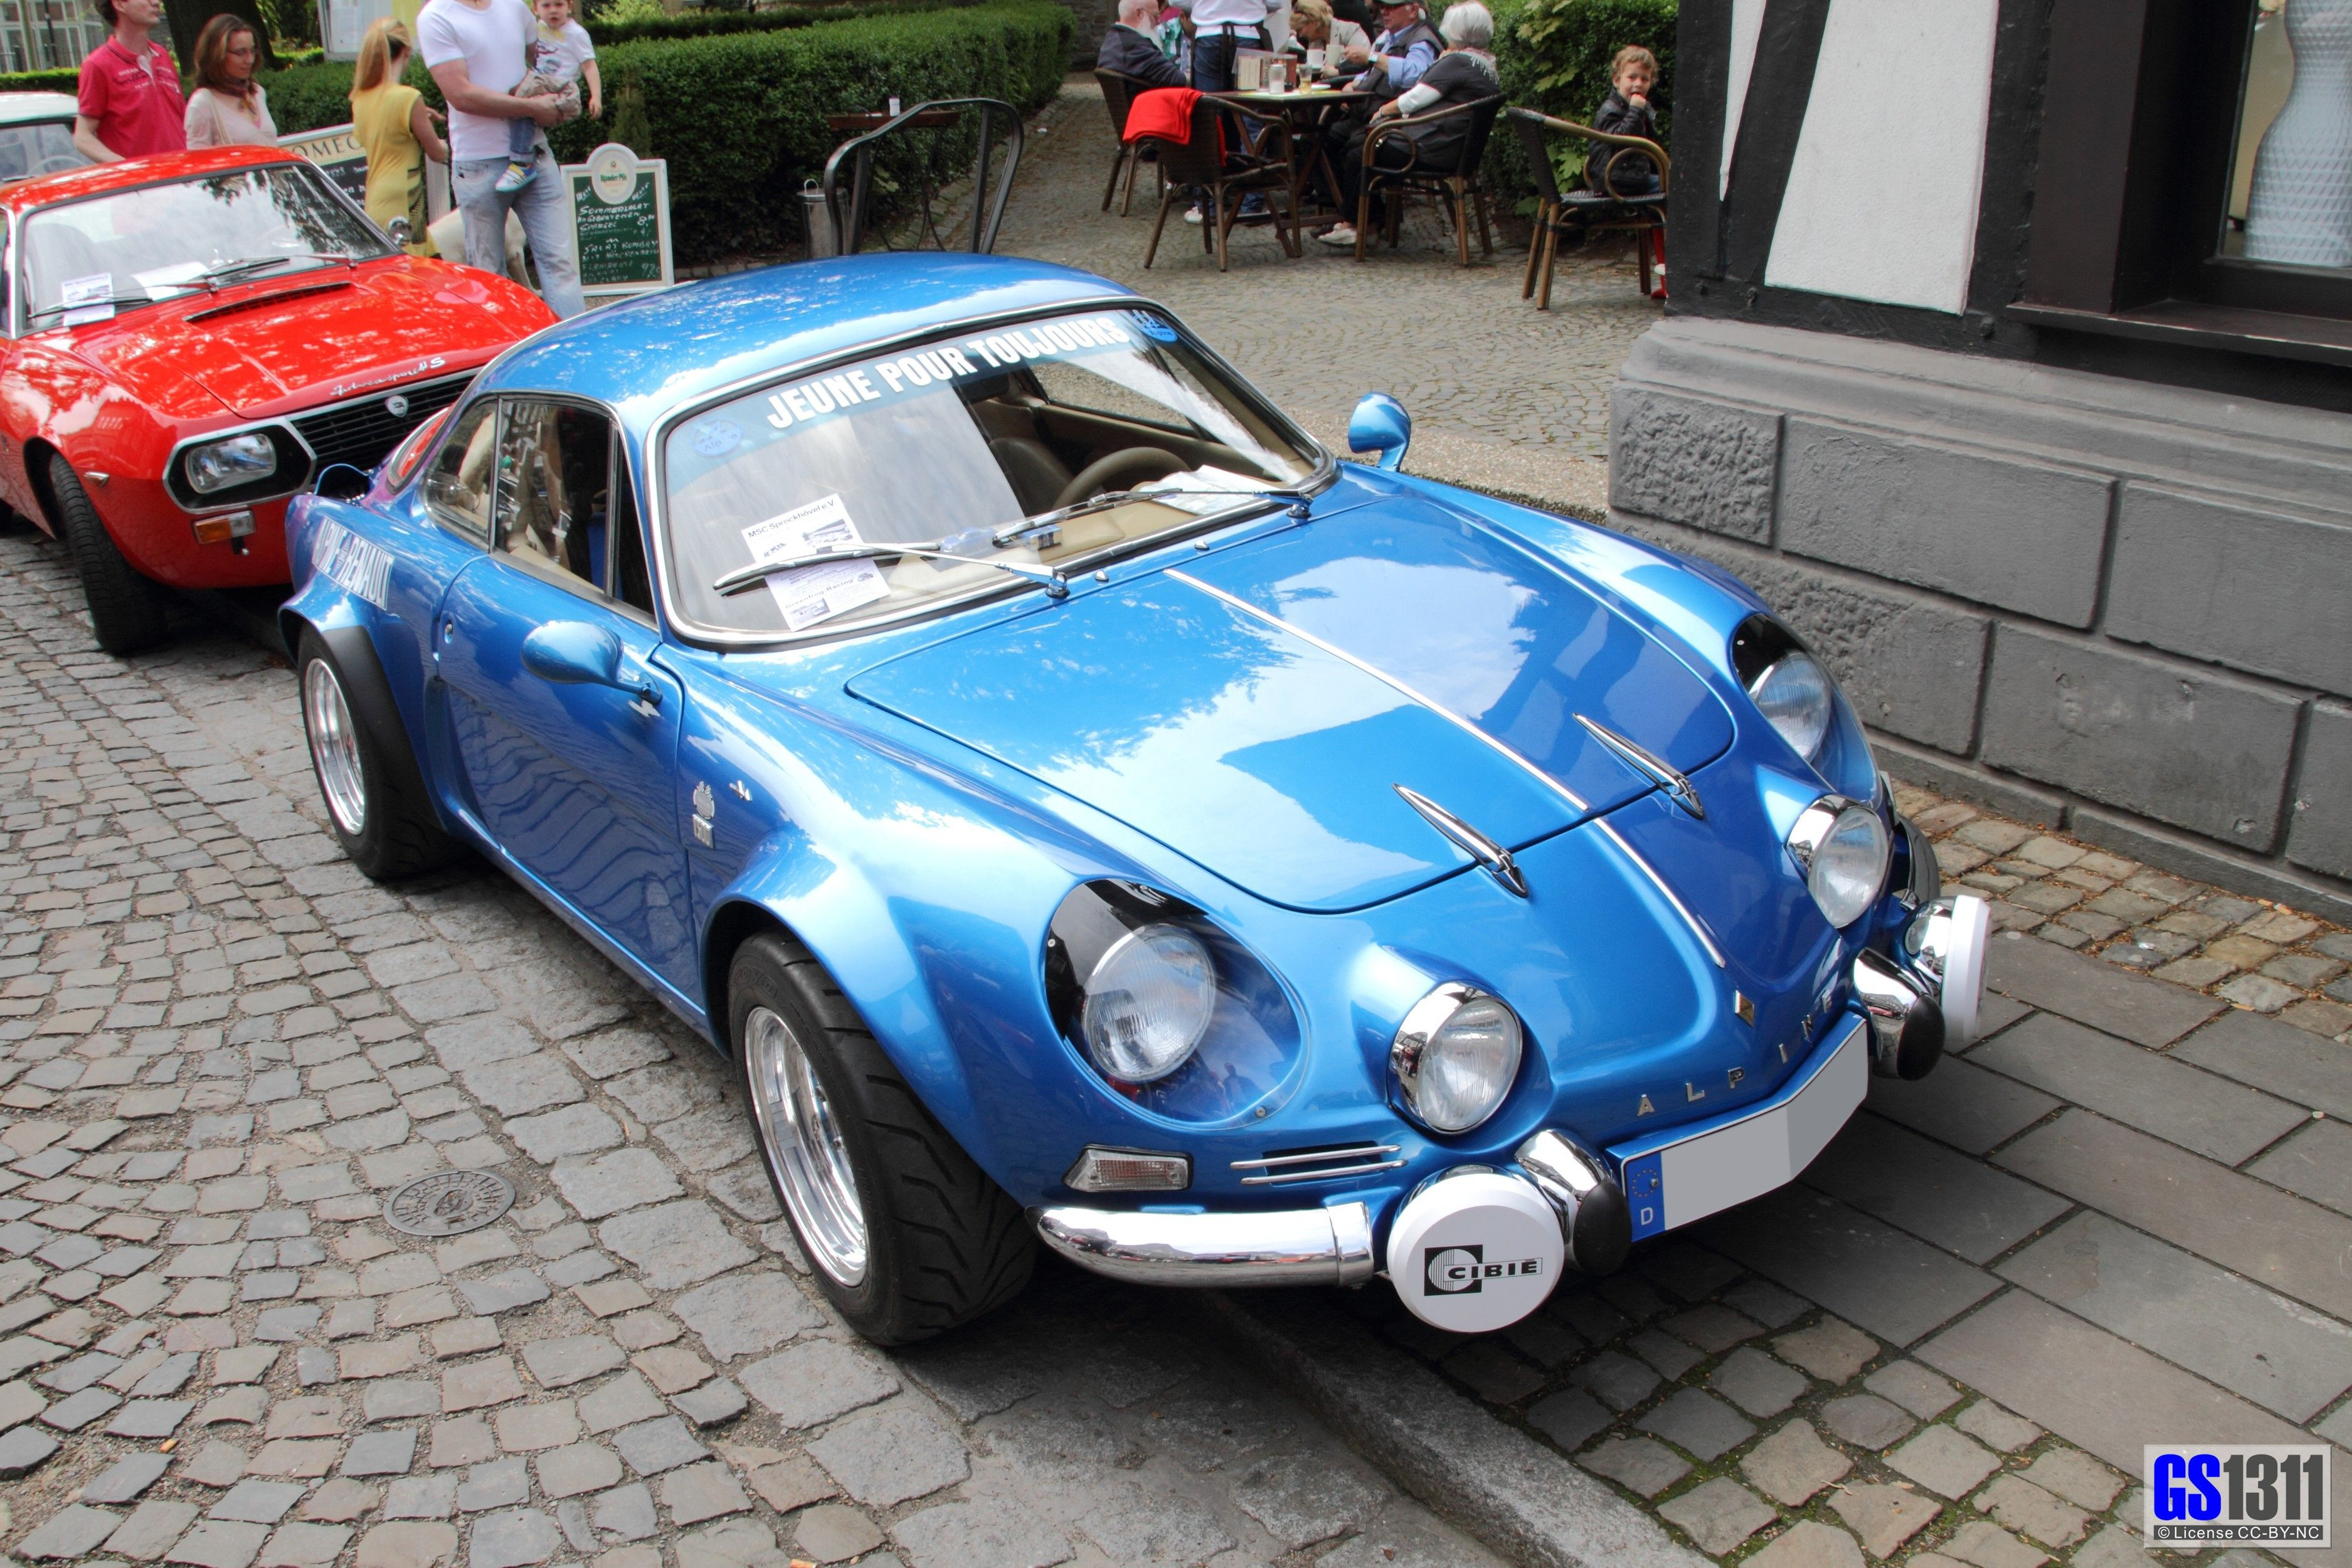 renault alpine a110 my drive pinterest cars peugeot and vehicle. Black Bedroom Furniture Sets. Home Design Ideas